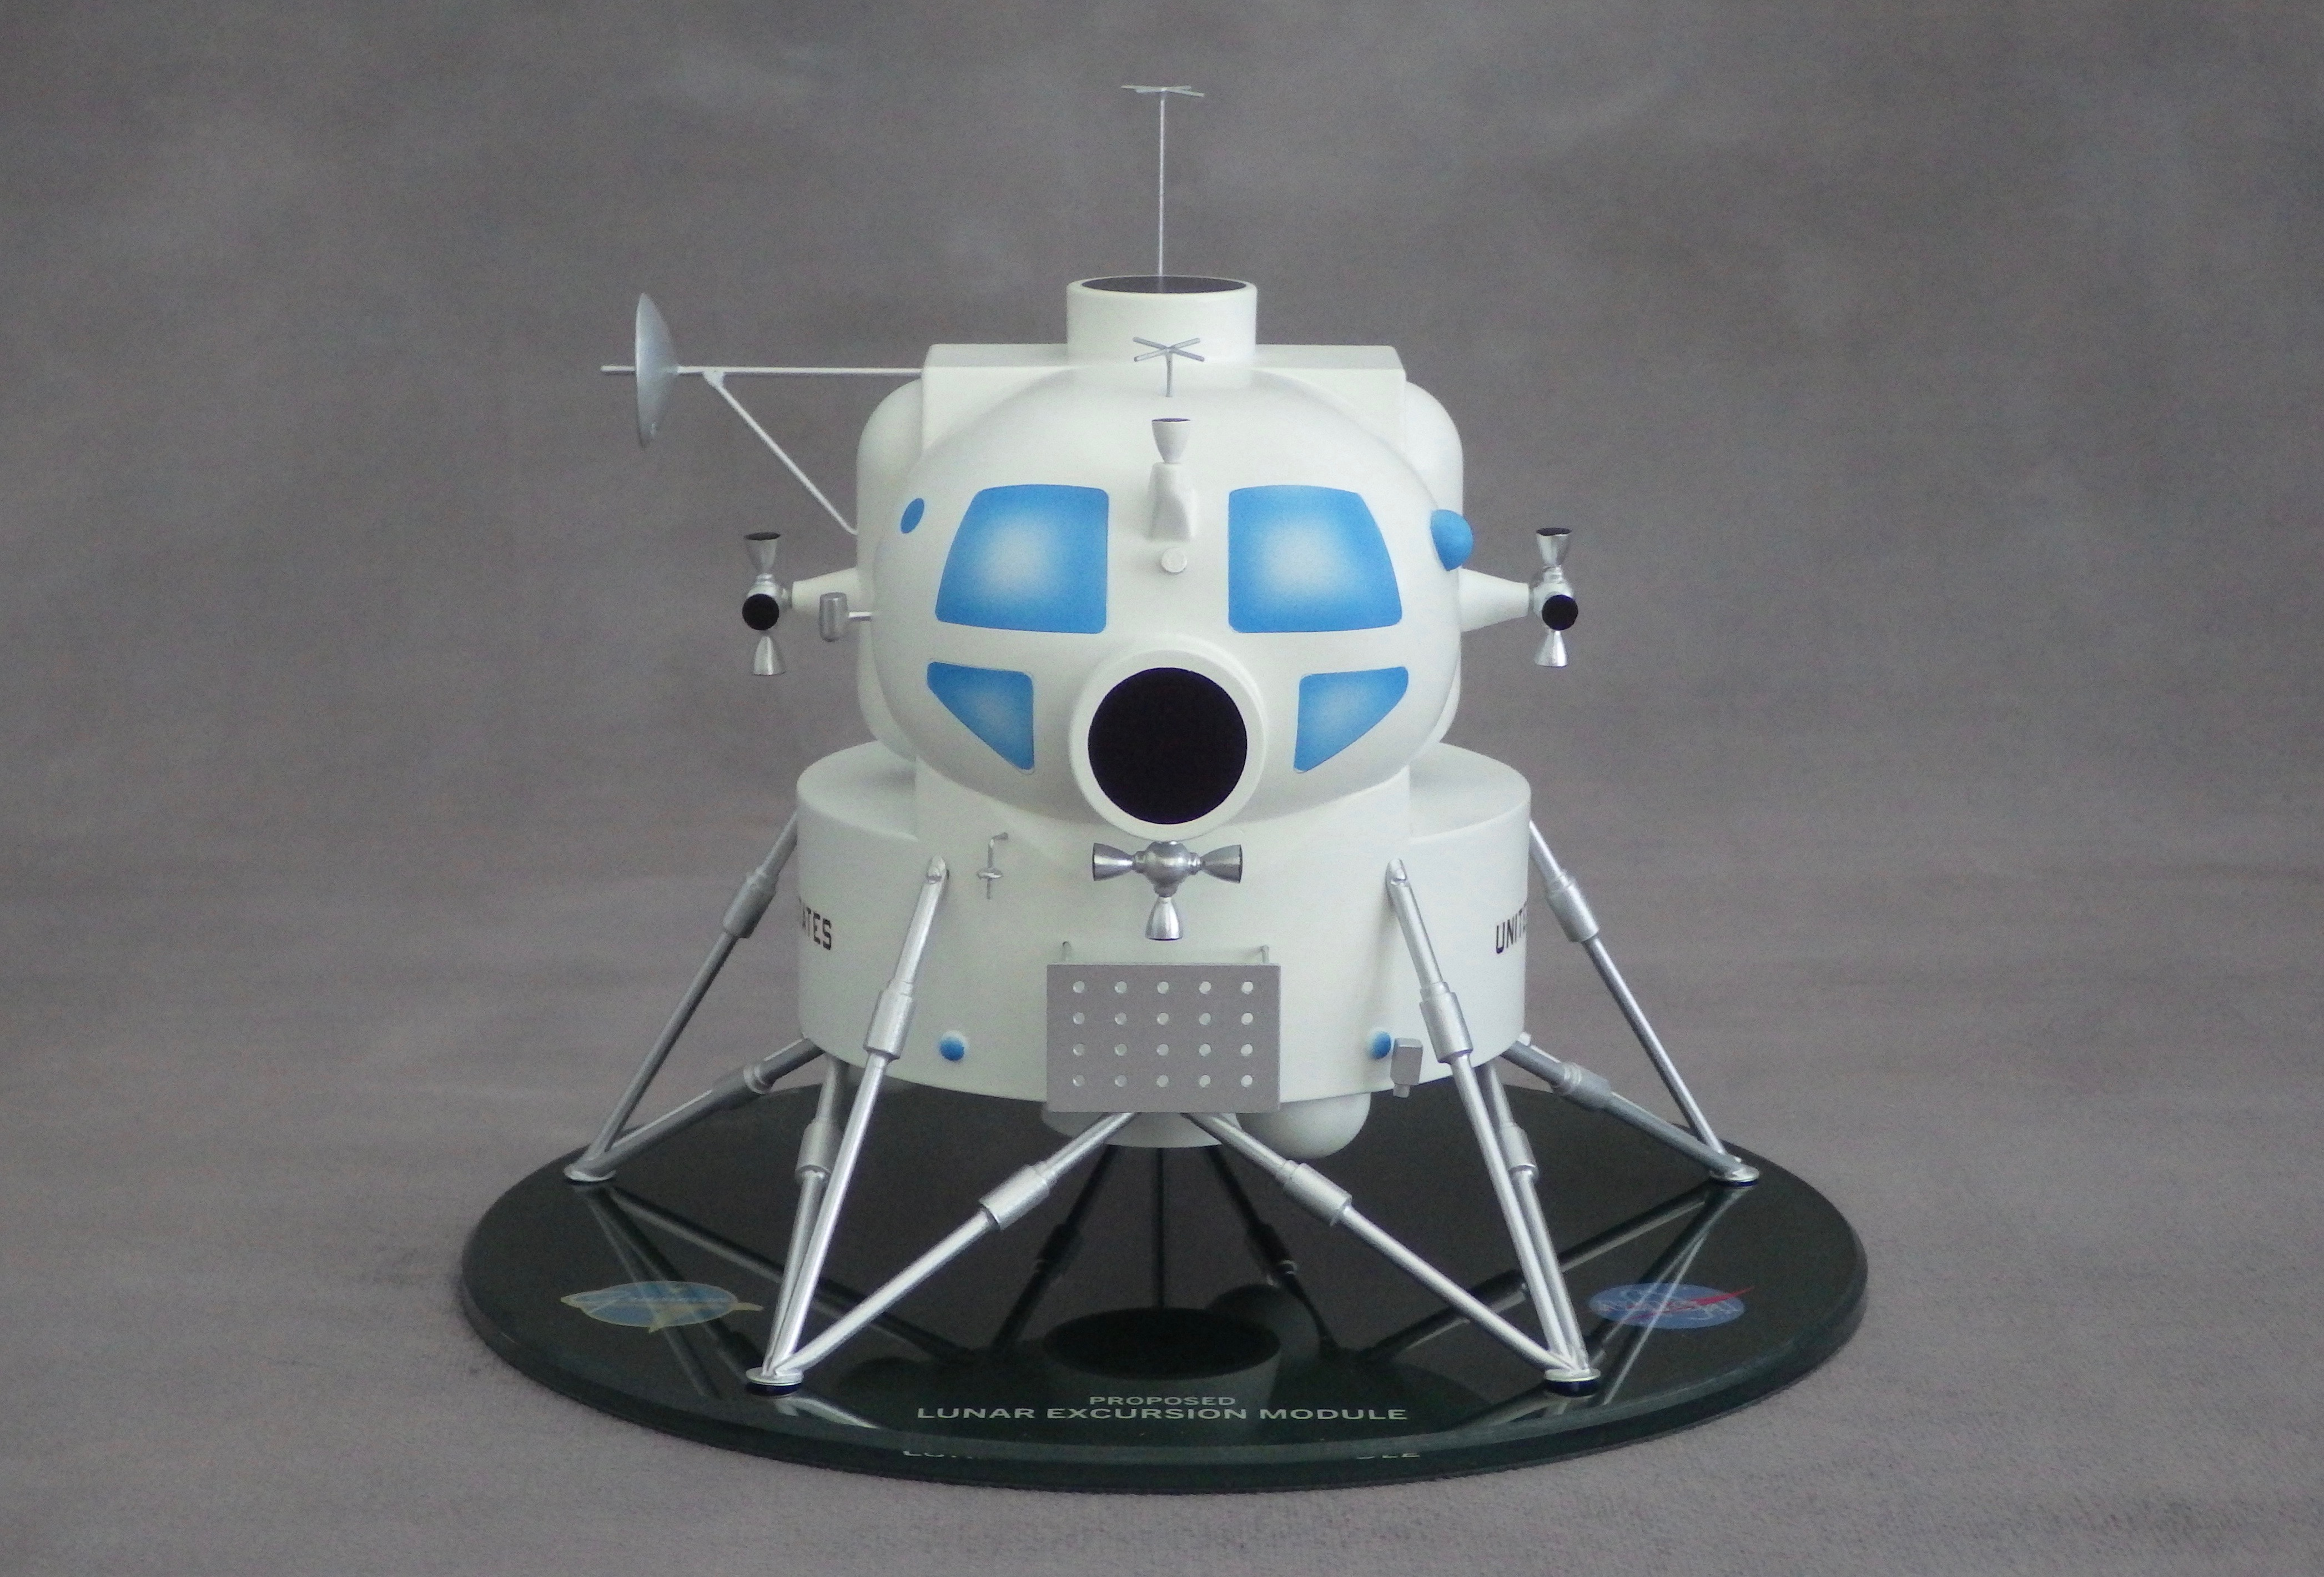 1962 Grumman Lunar Excursion Module